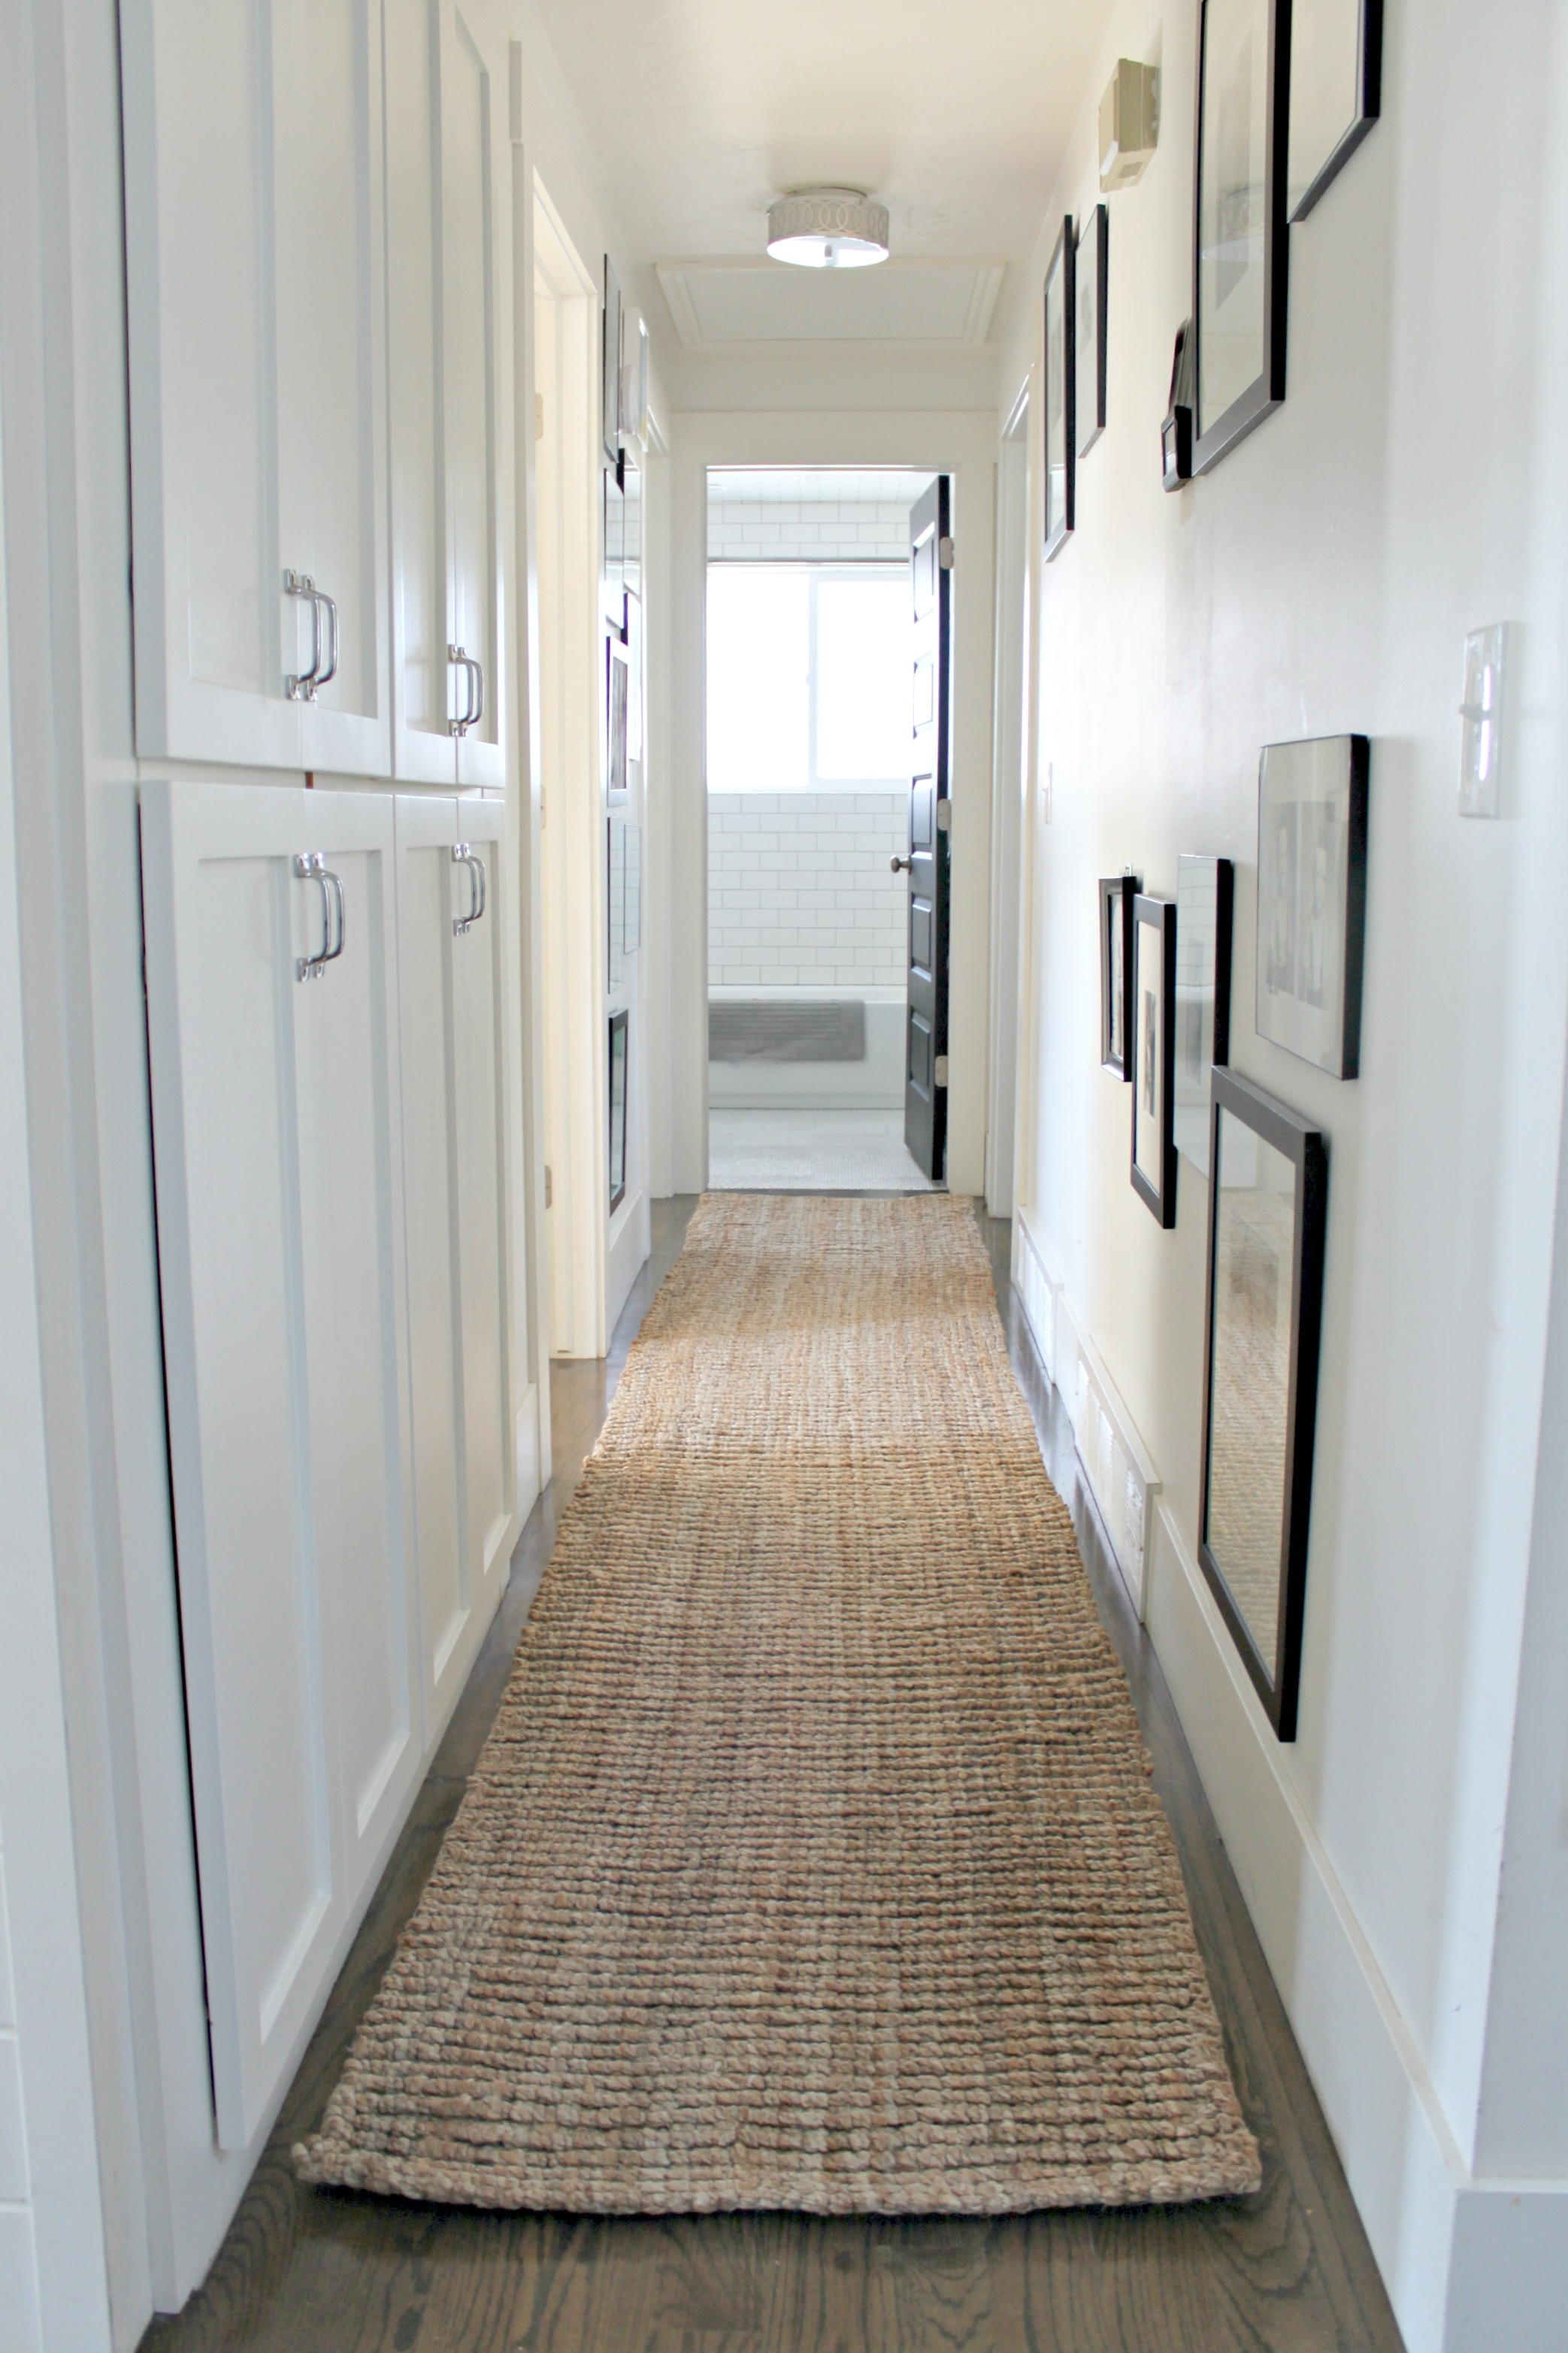 Flooring Hallway Runner Ideas Carpet Runners Hallway Runners Pertaining To Carpet Runners Hallways (#9 of 20)